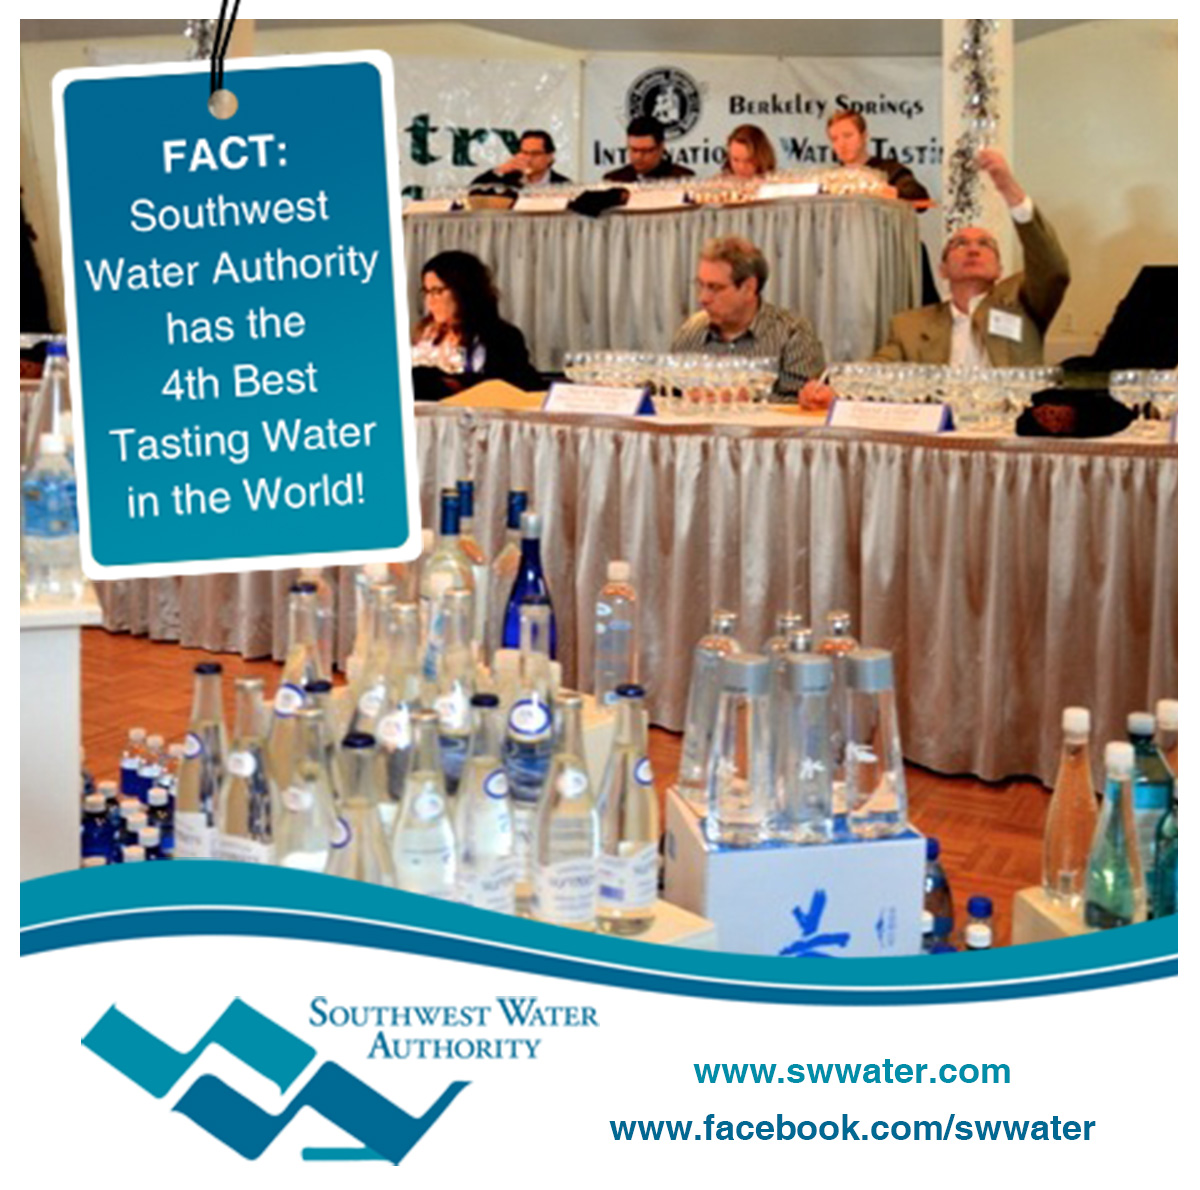 Southwest Water Authority has the 4th Best Tasting Water in the World!